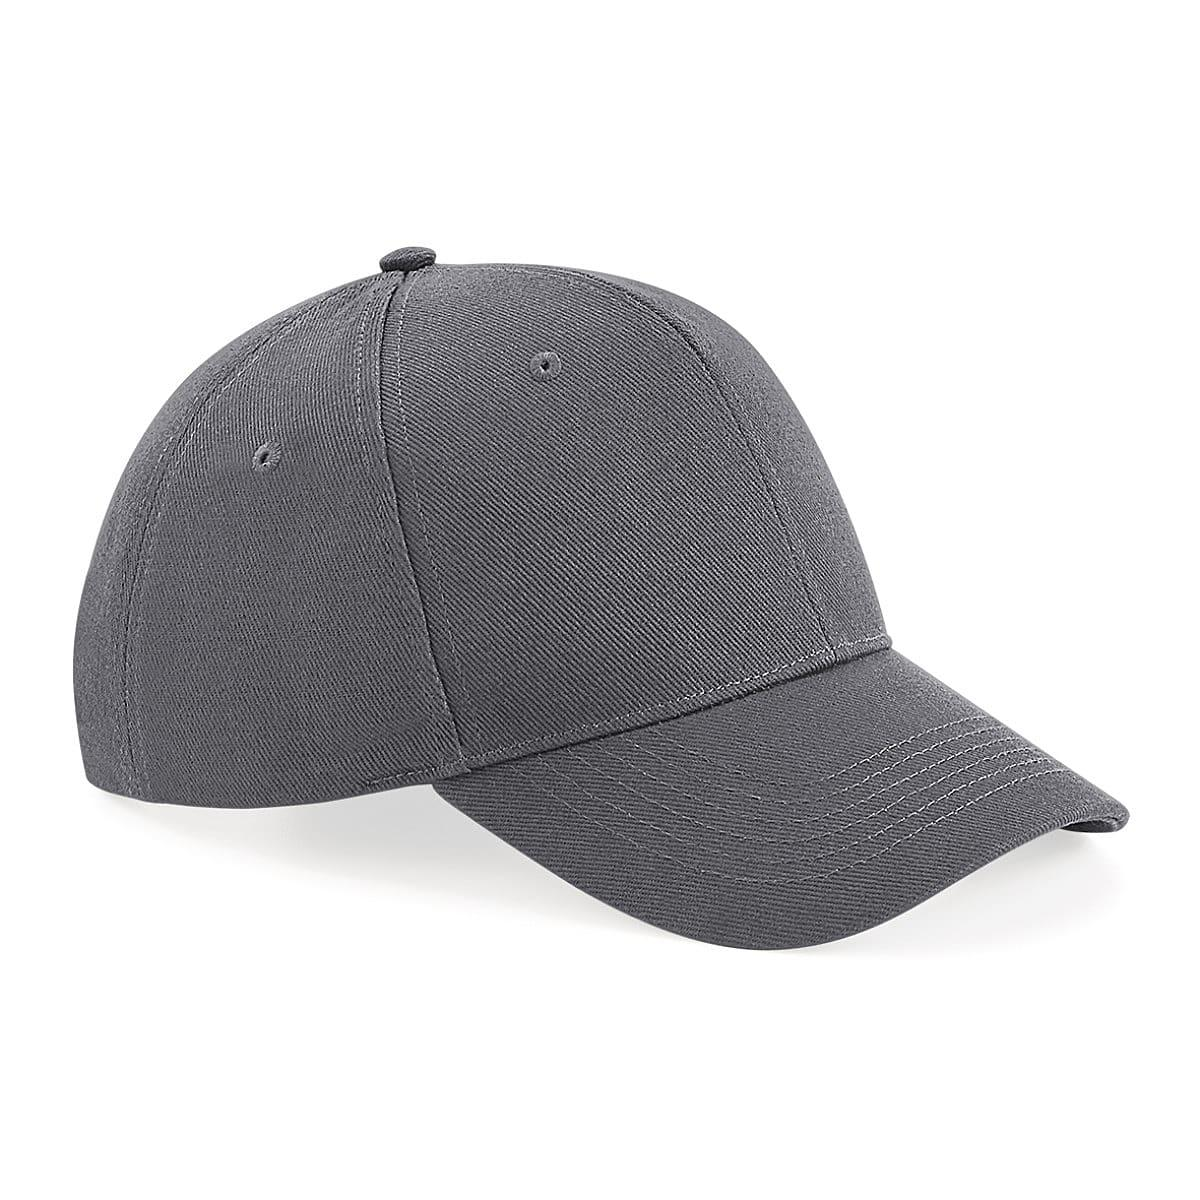 Beechfield Untimate 6 Panel Cap in Graphite (Product Code: B18)